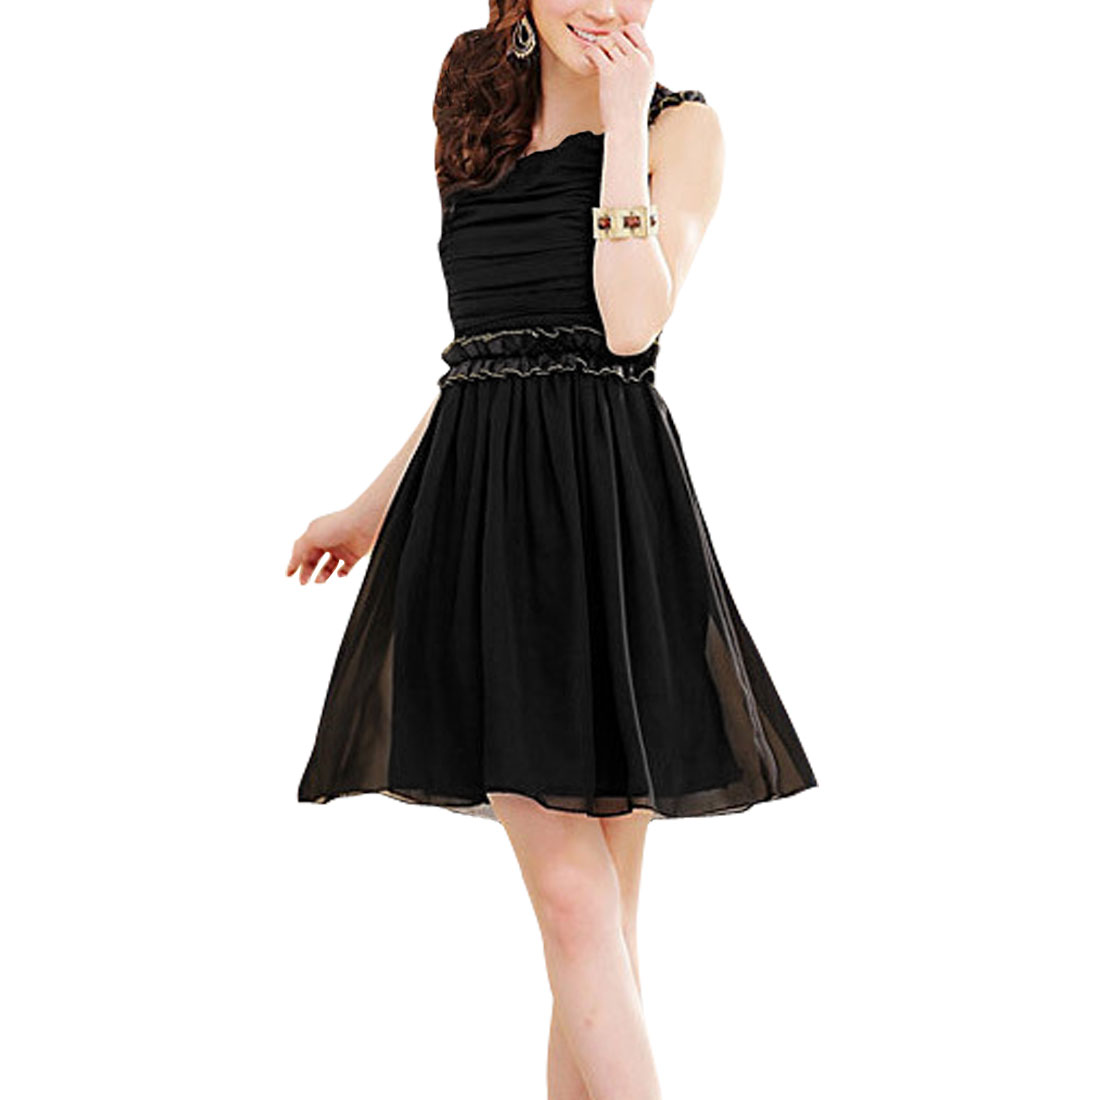 Ladies Black Elastic Waist Ruffled Detail Casual Chiffon Dress Xs